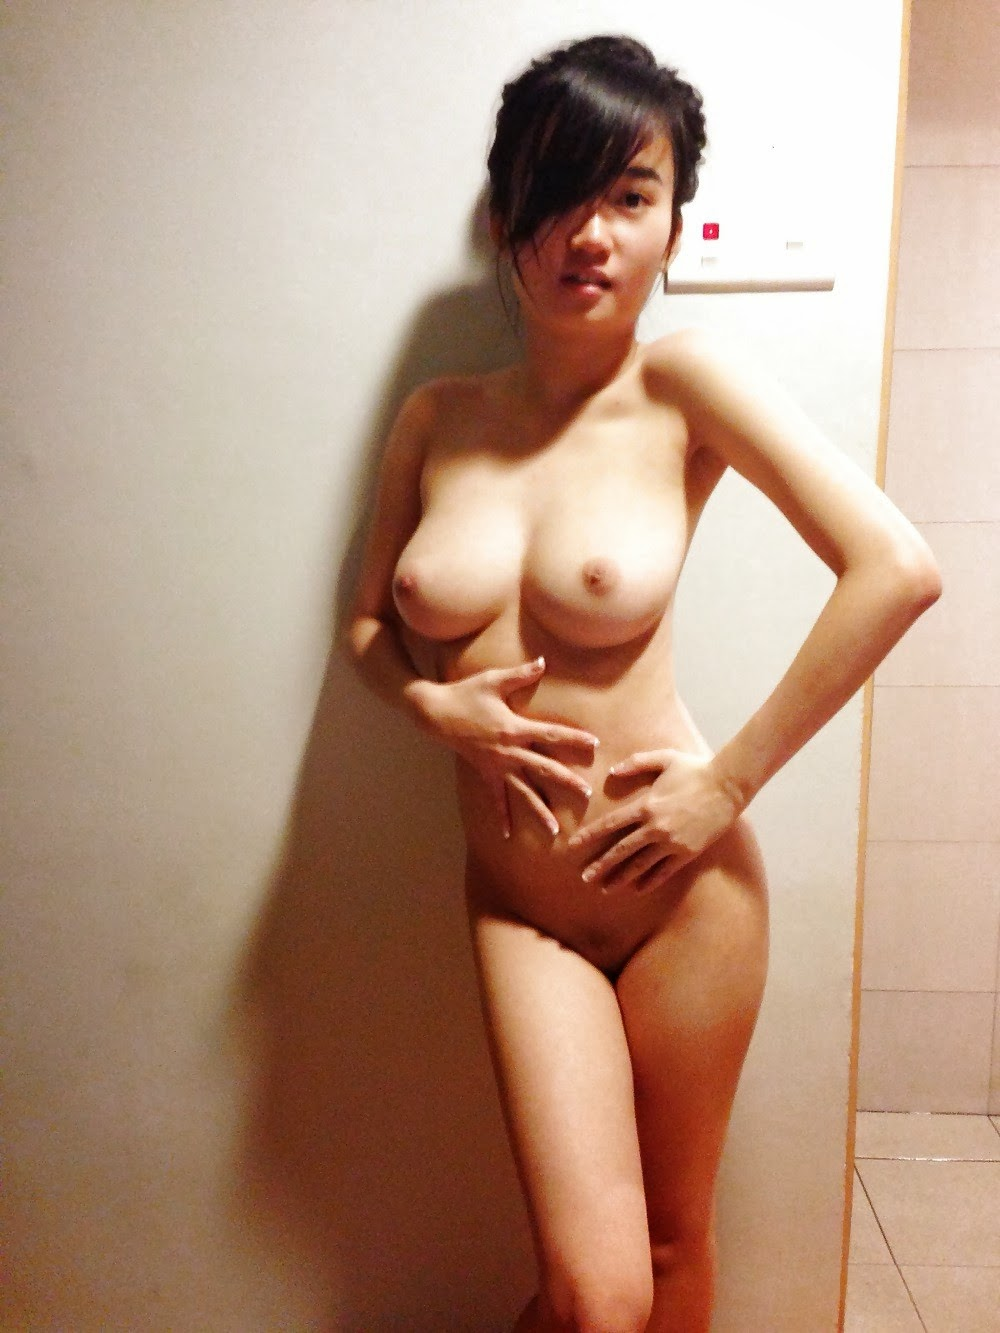 Taiwanese amateur nude photo